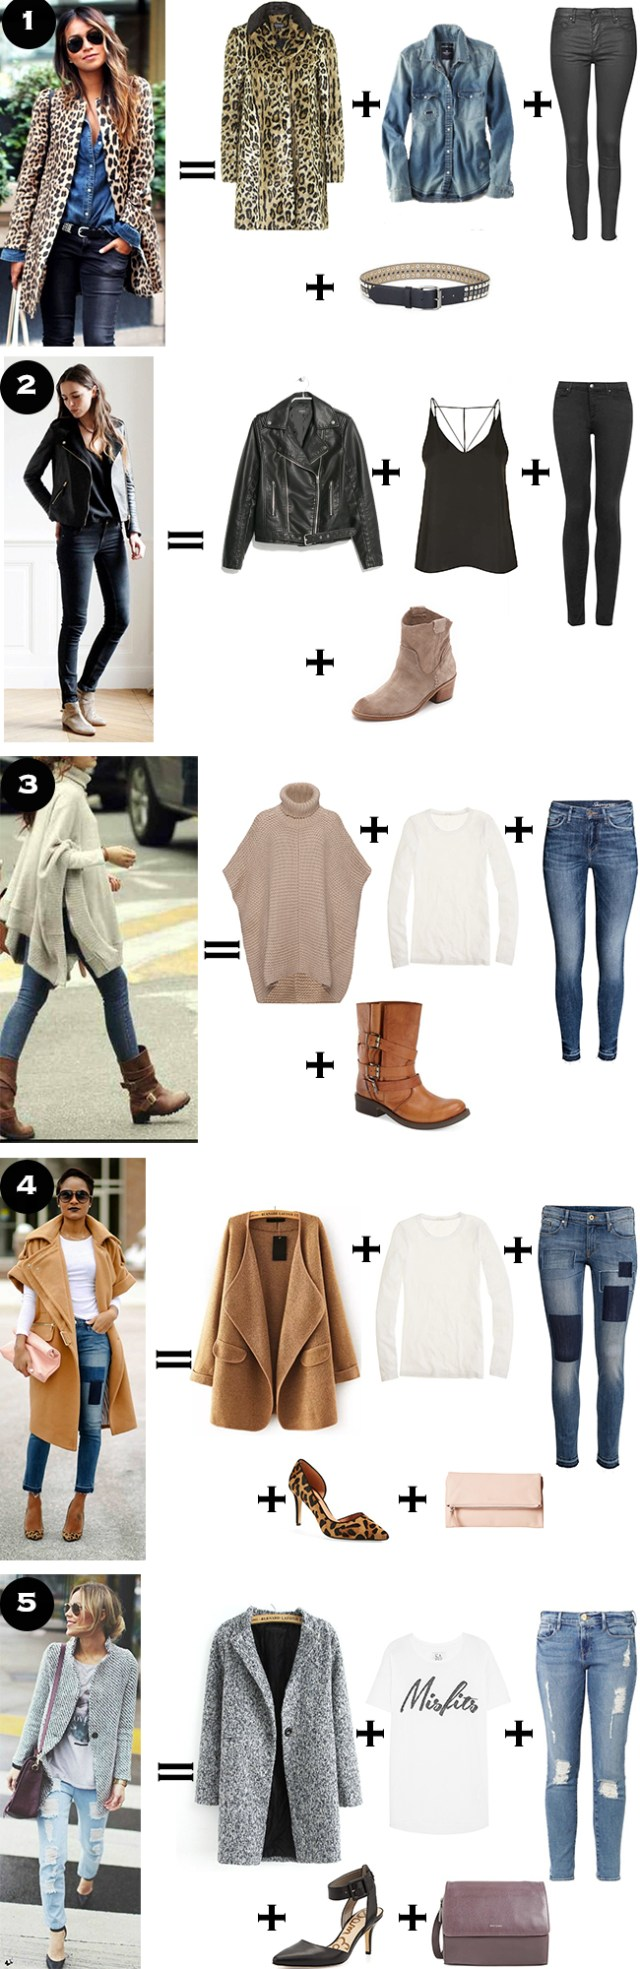 Pinterest Fashion Inspiration